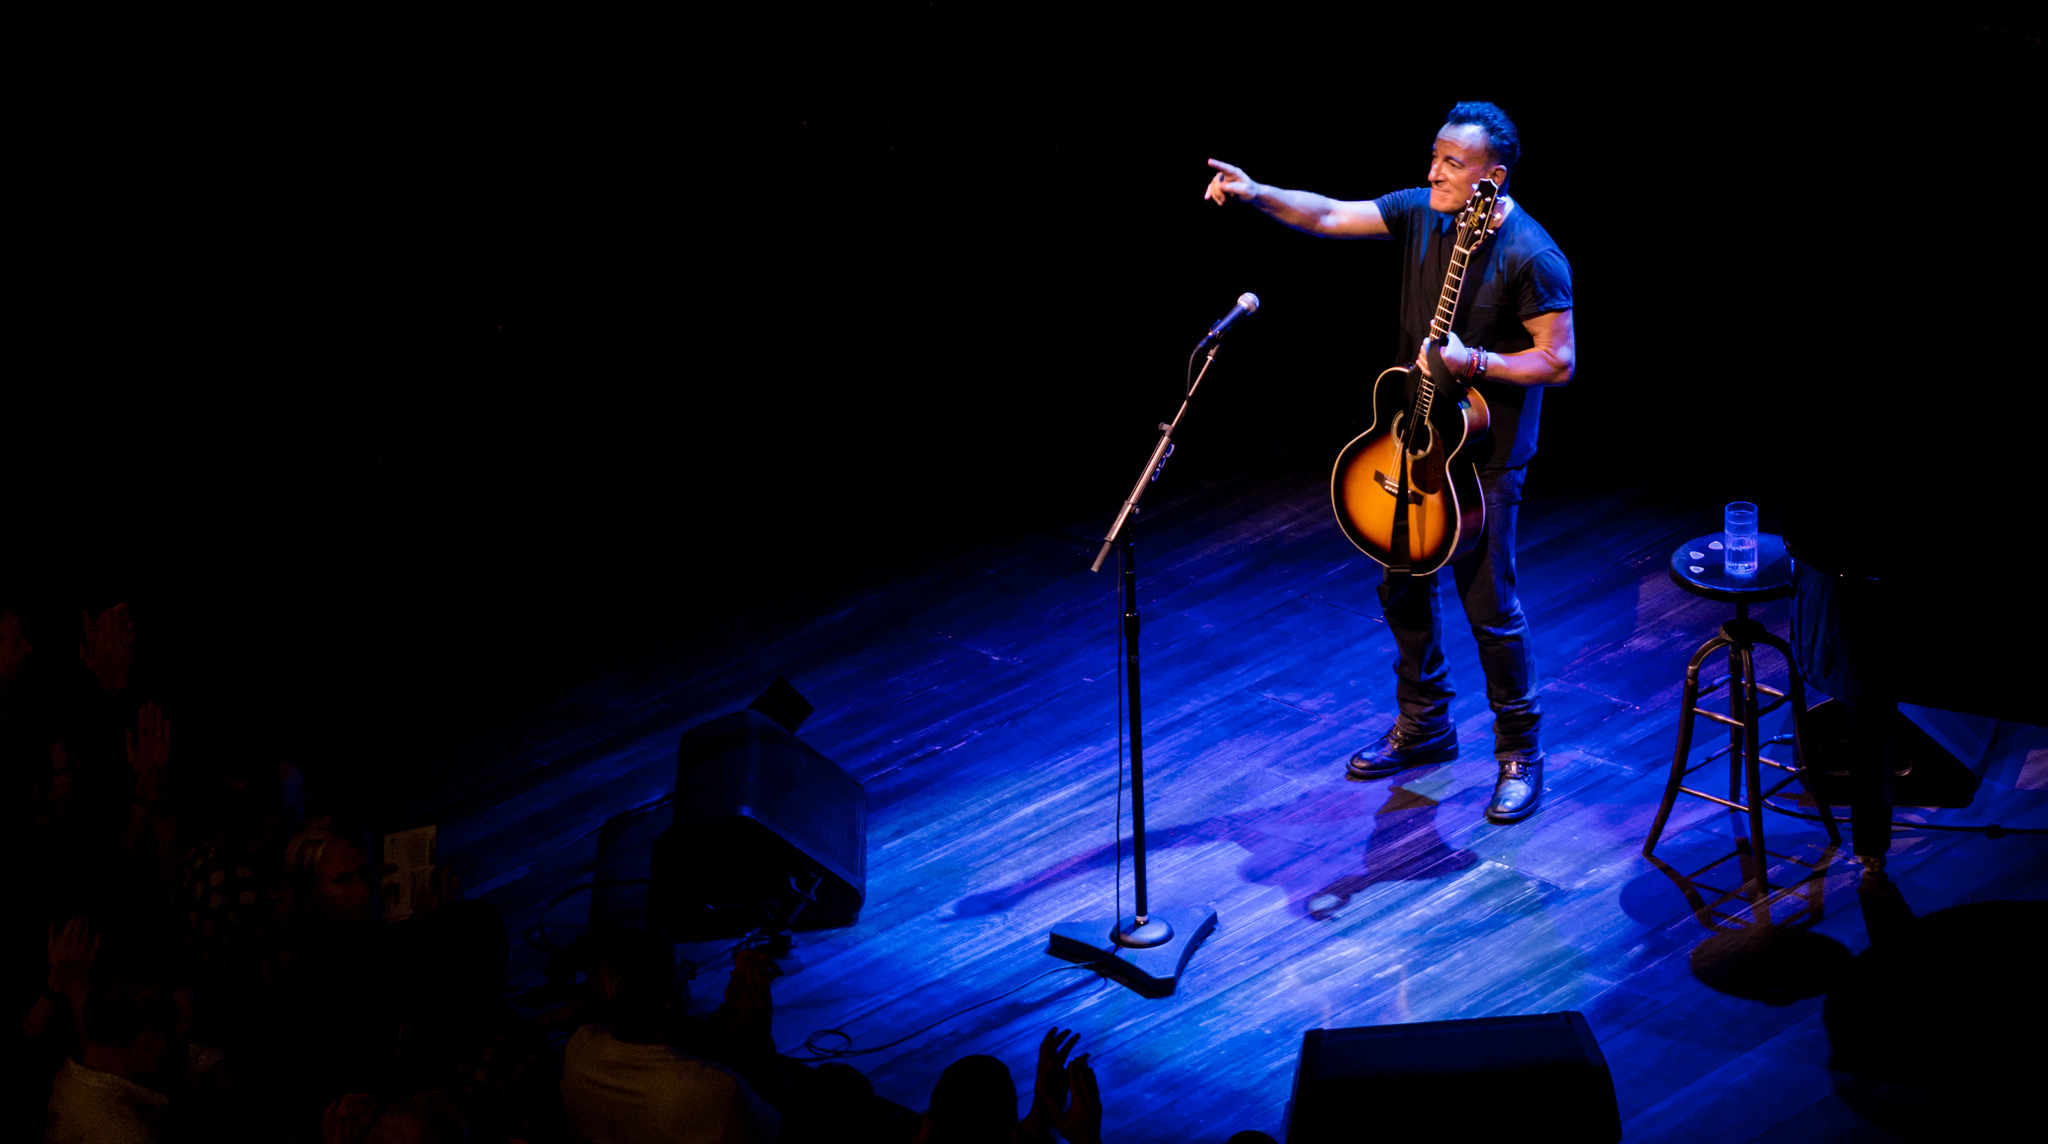 Bruce Springsteen [Fot. Raph PH/flickr.com]